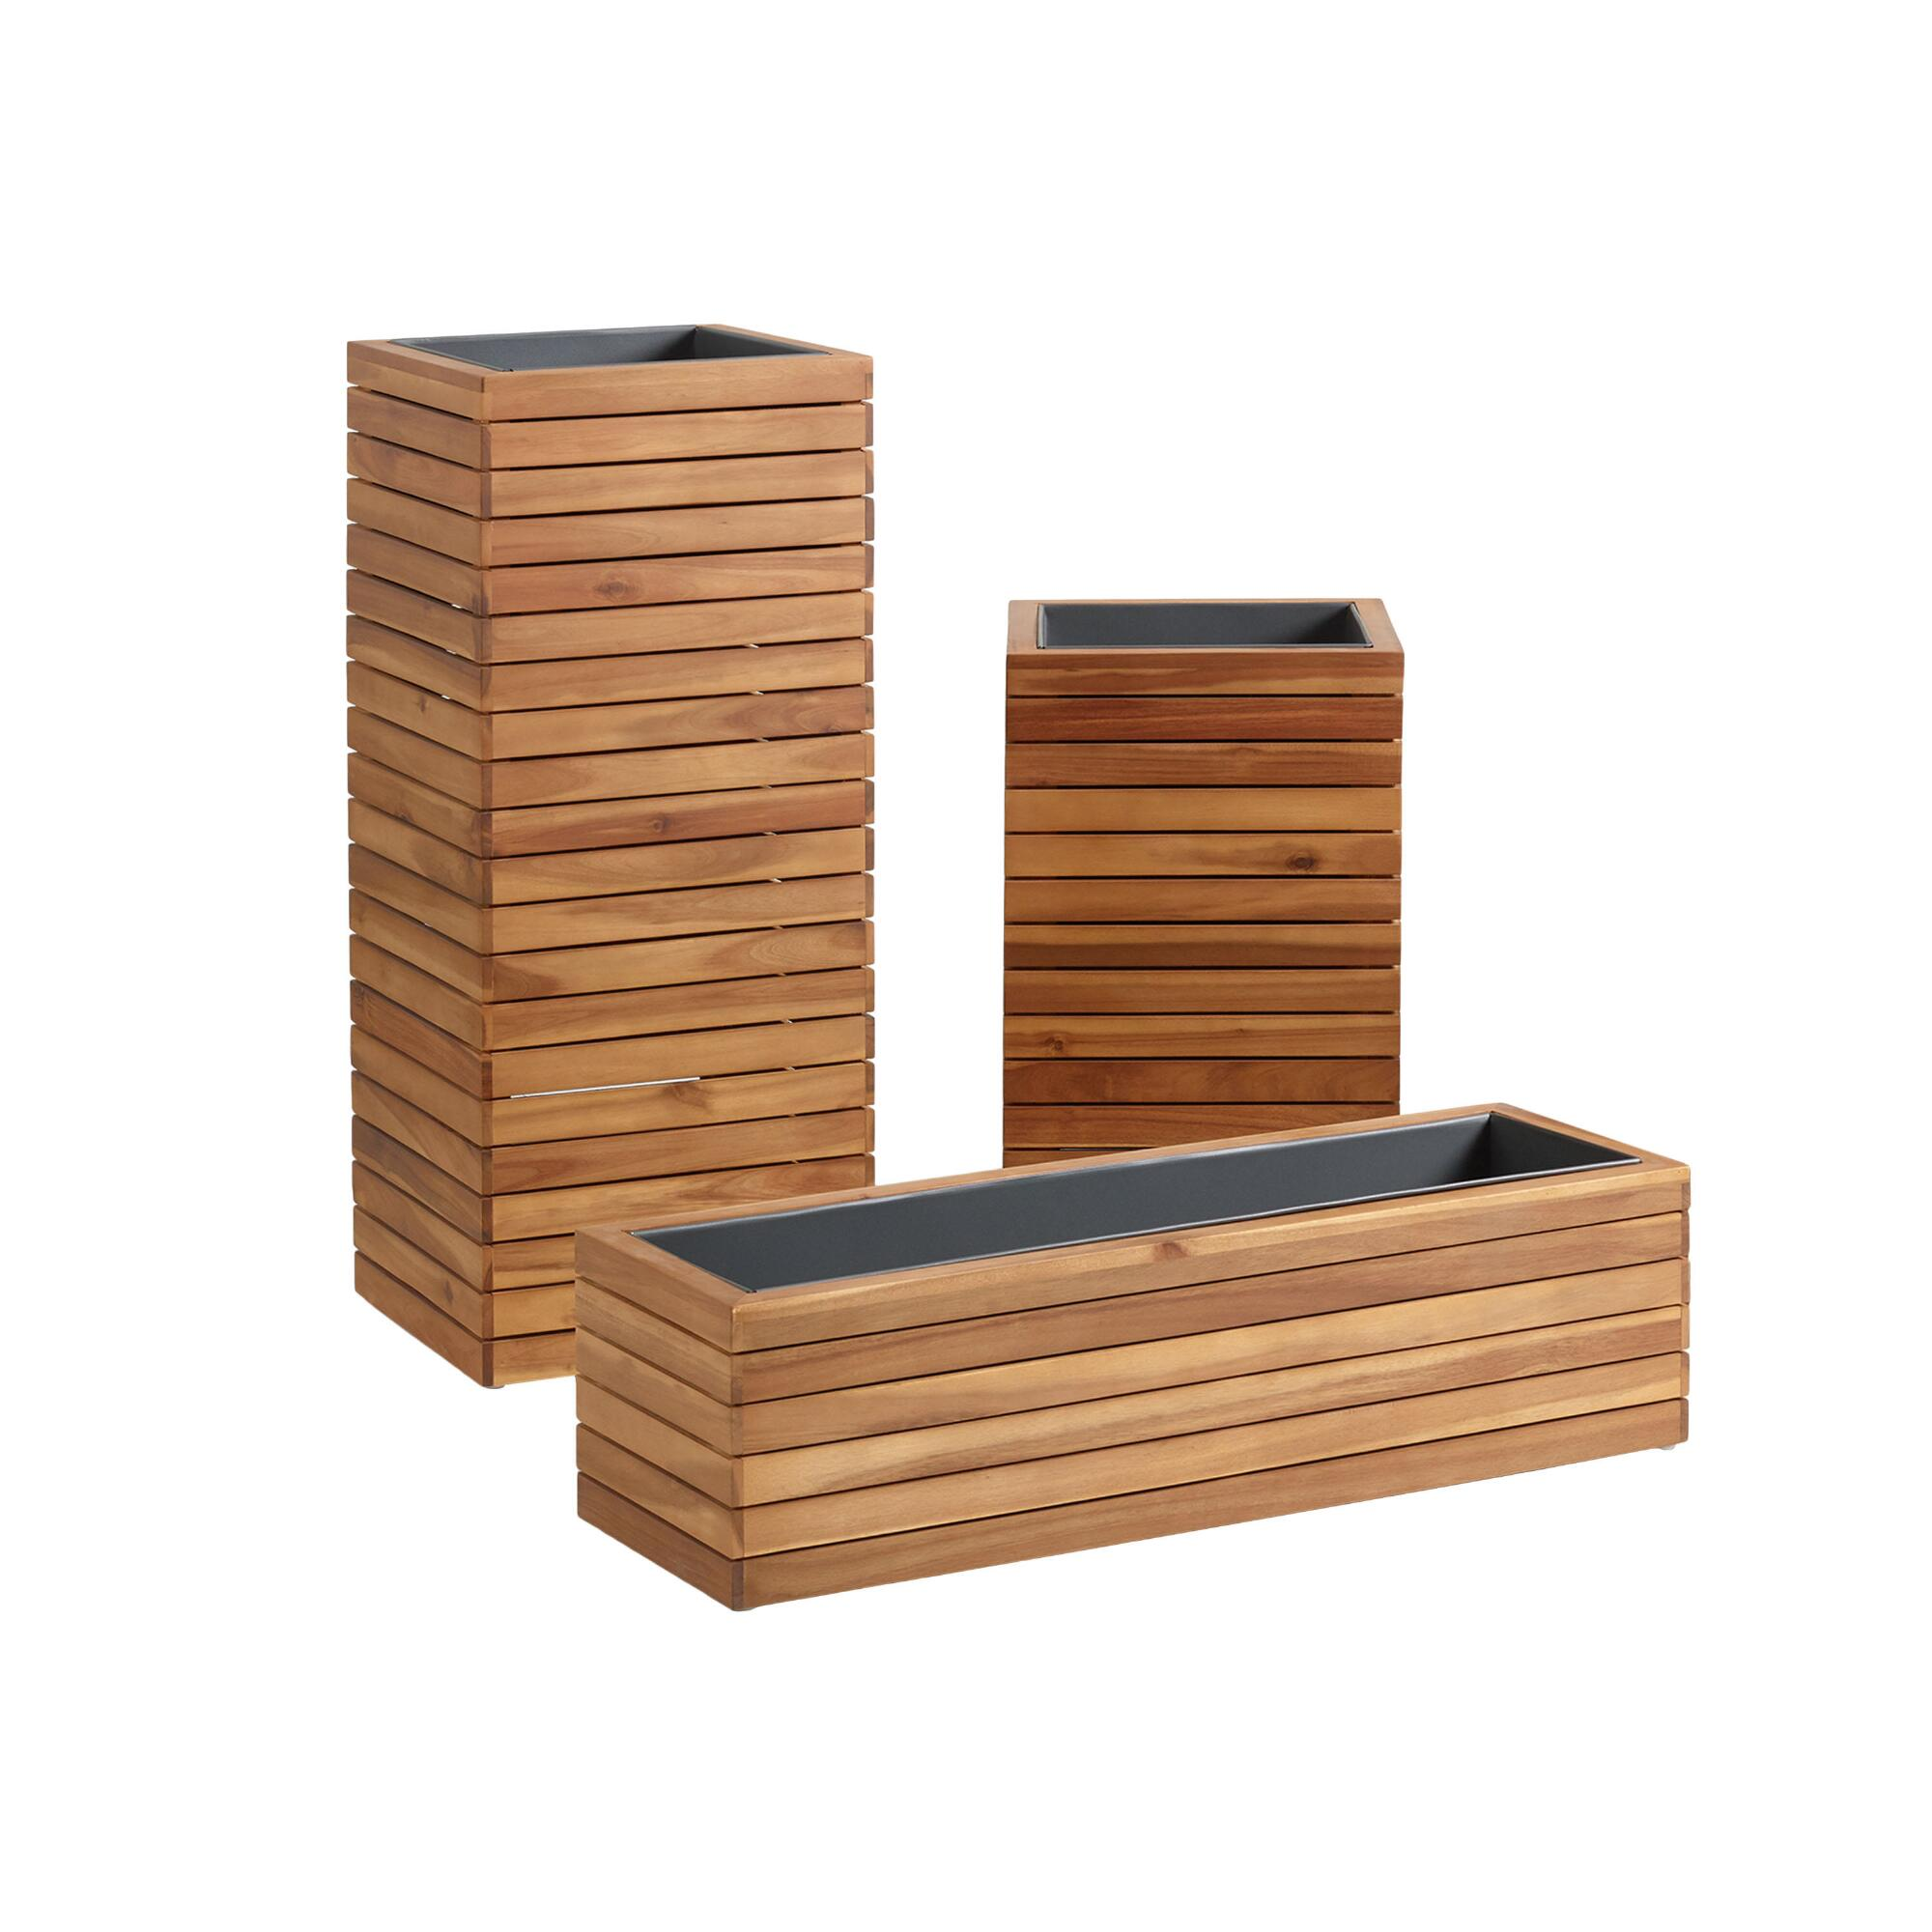 Wood and Metal Alicante Outdoor Patio Planter: Natural - Small by World Market Small